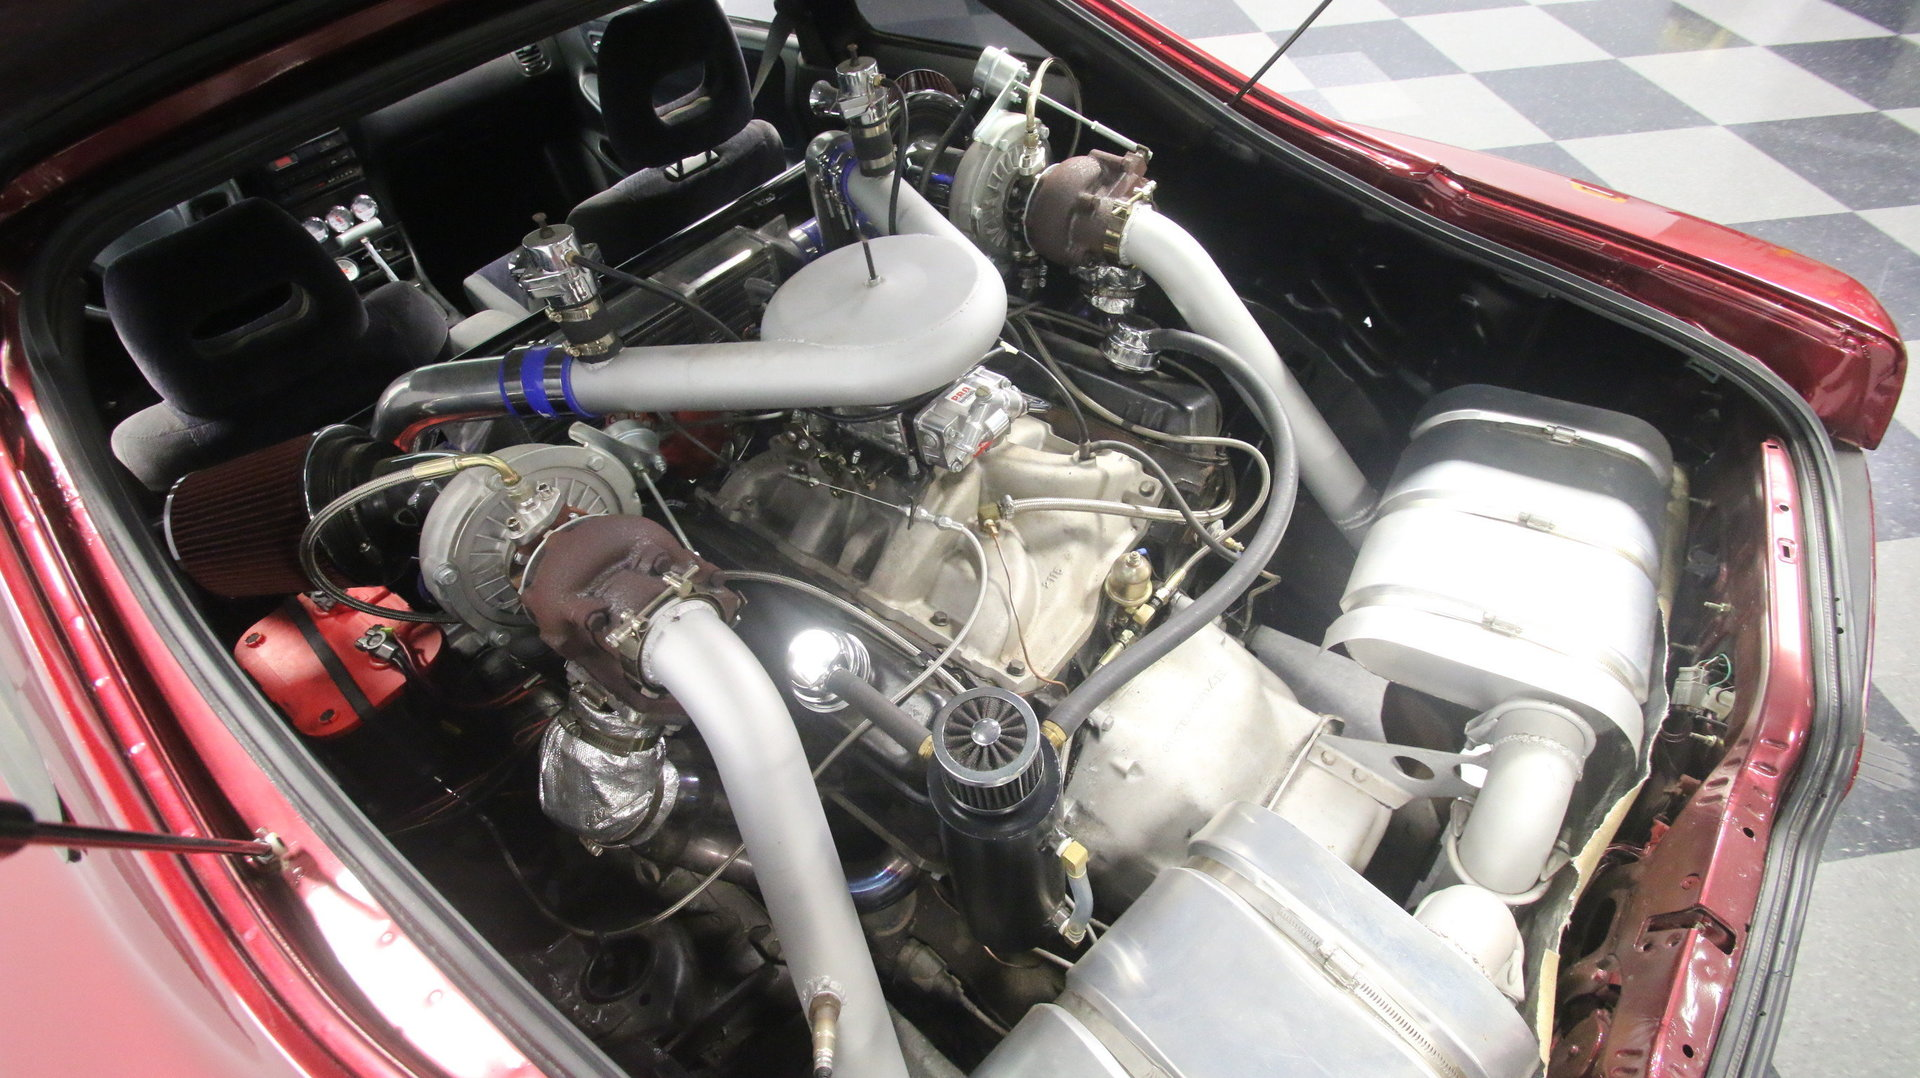 For Sale Acura Integra With A Twin Turbo Cadillac V8 In